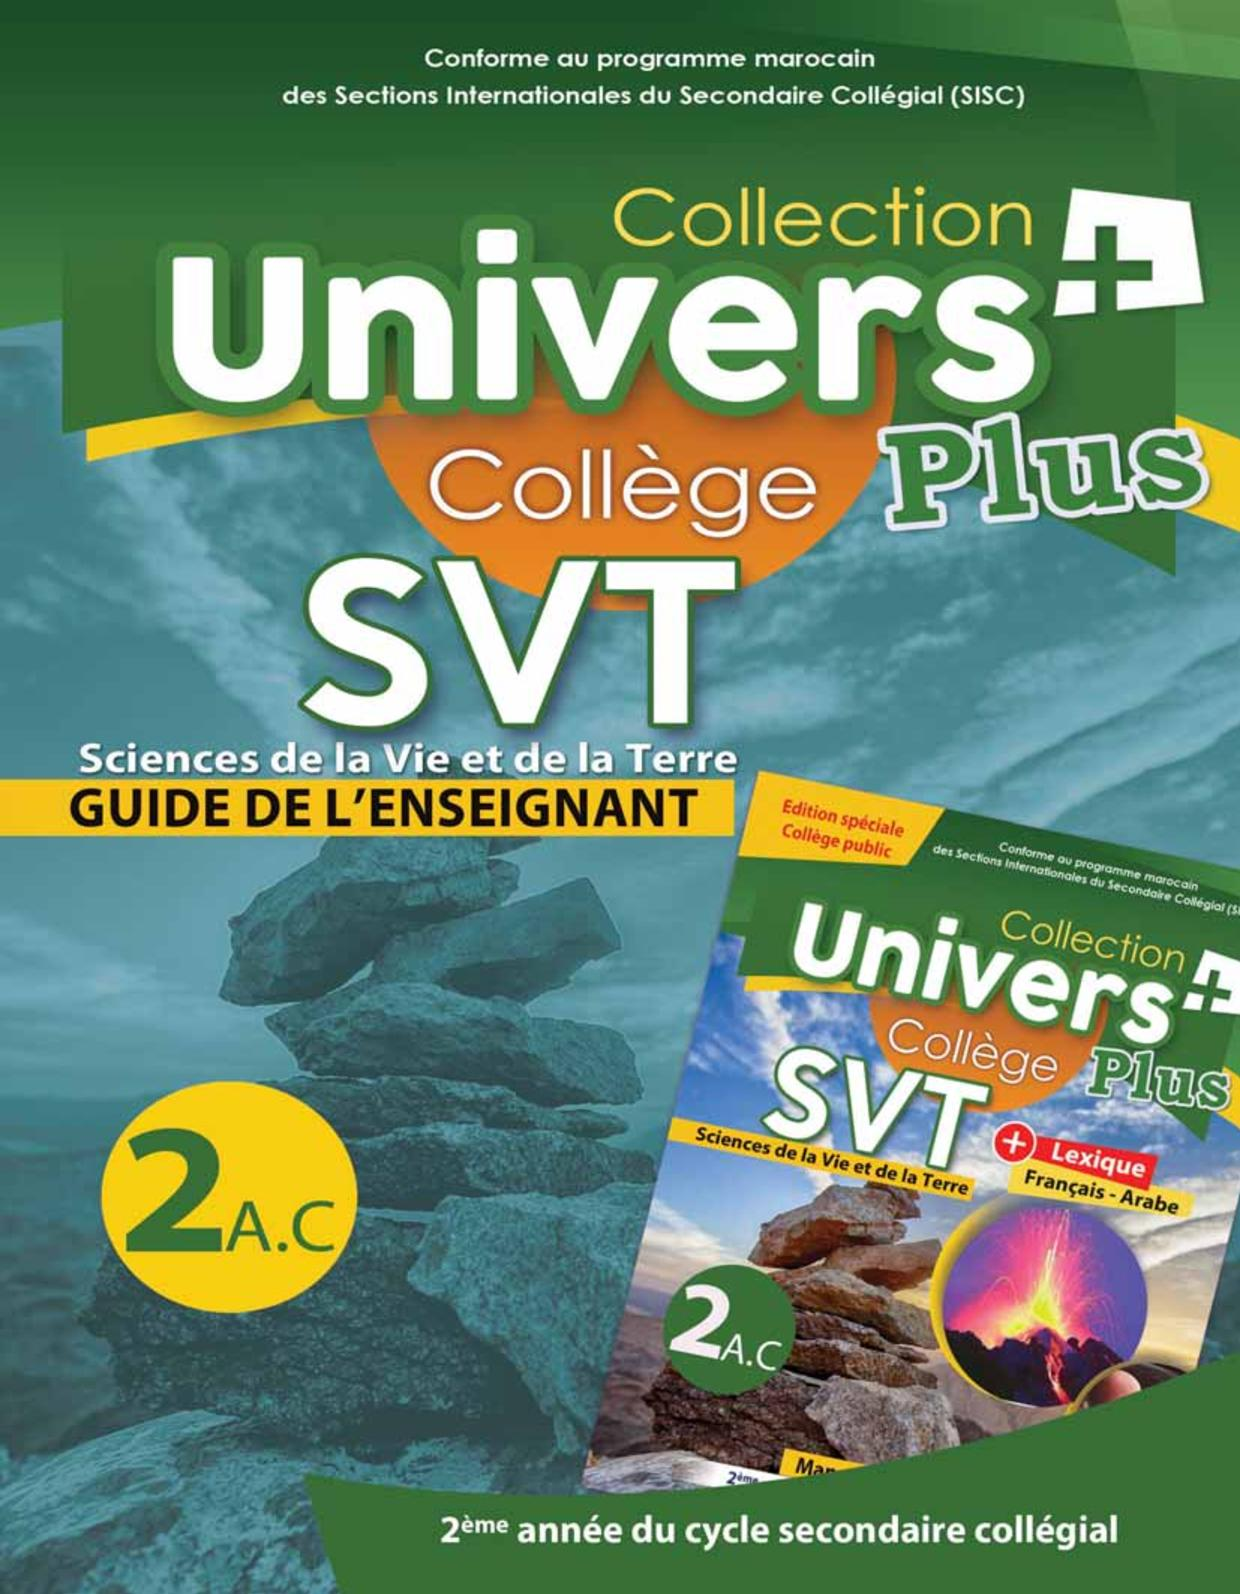 Calameo Guide L Univers Plus Svt 2ac